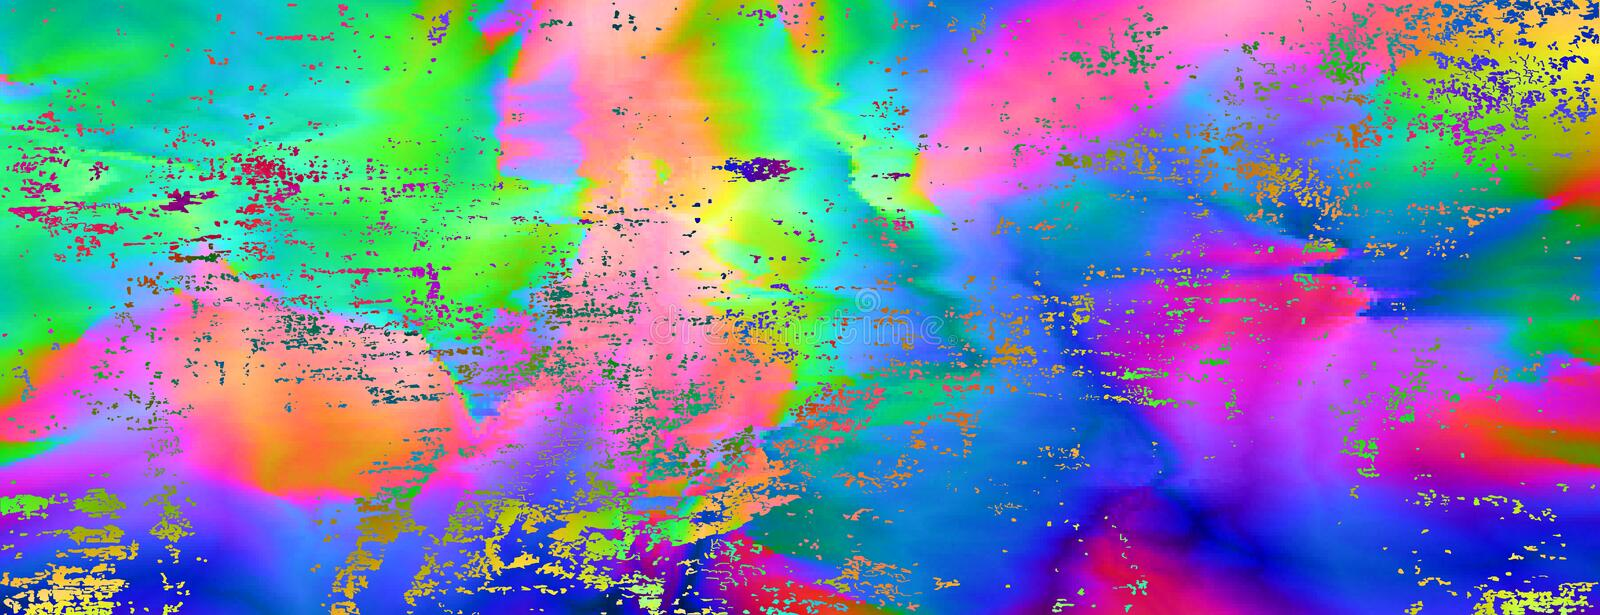 Colourful glitch abstract background vector illustration